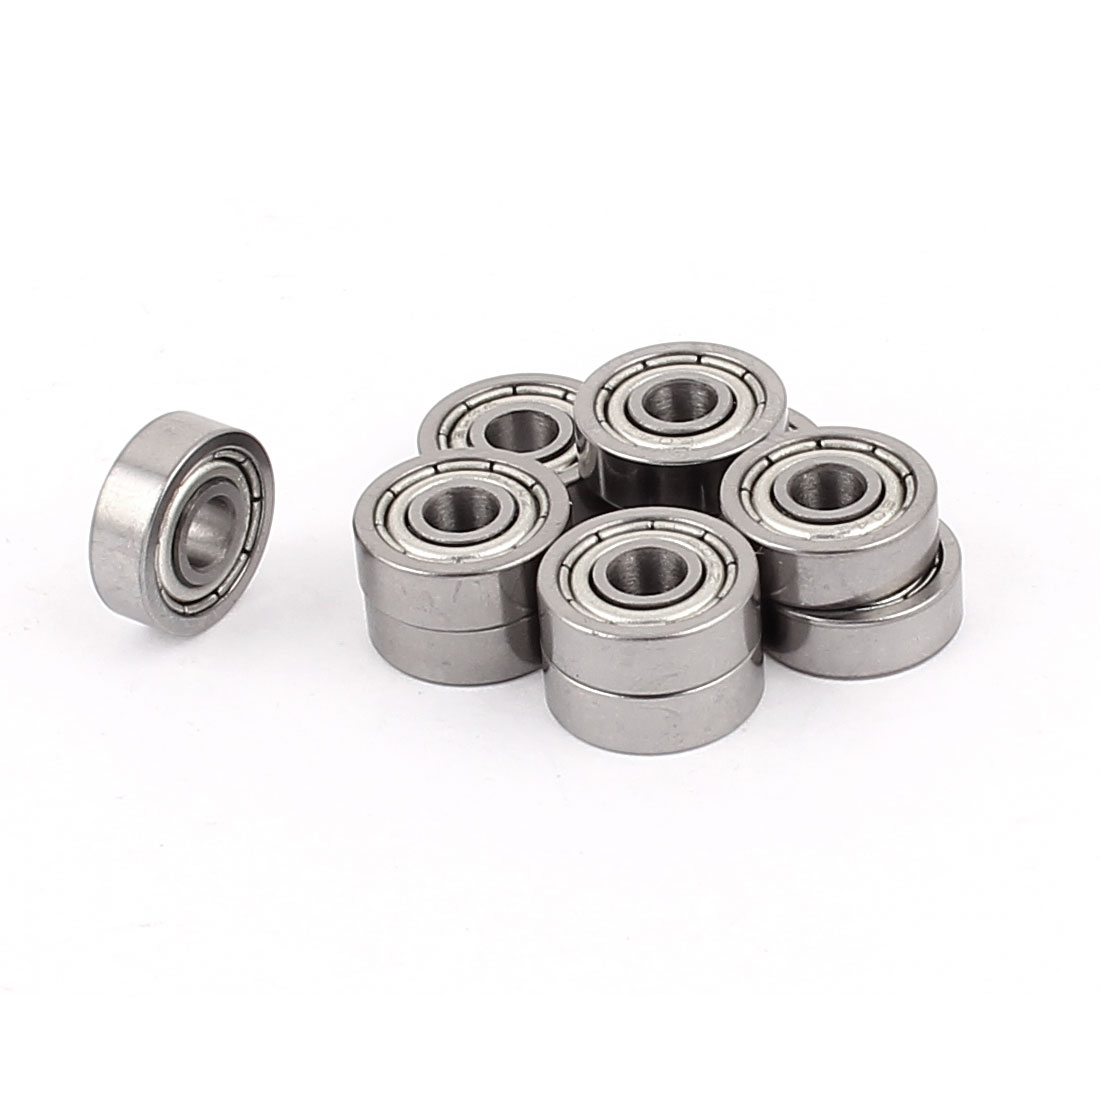 12mm x 4mm x 4mm Metal Sealed Double Shielded Deep Groove Ball Bearing 10Pcs